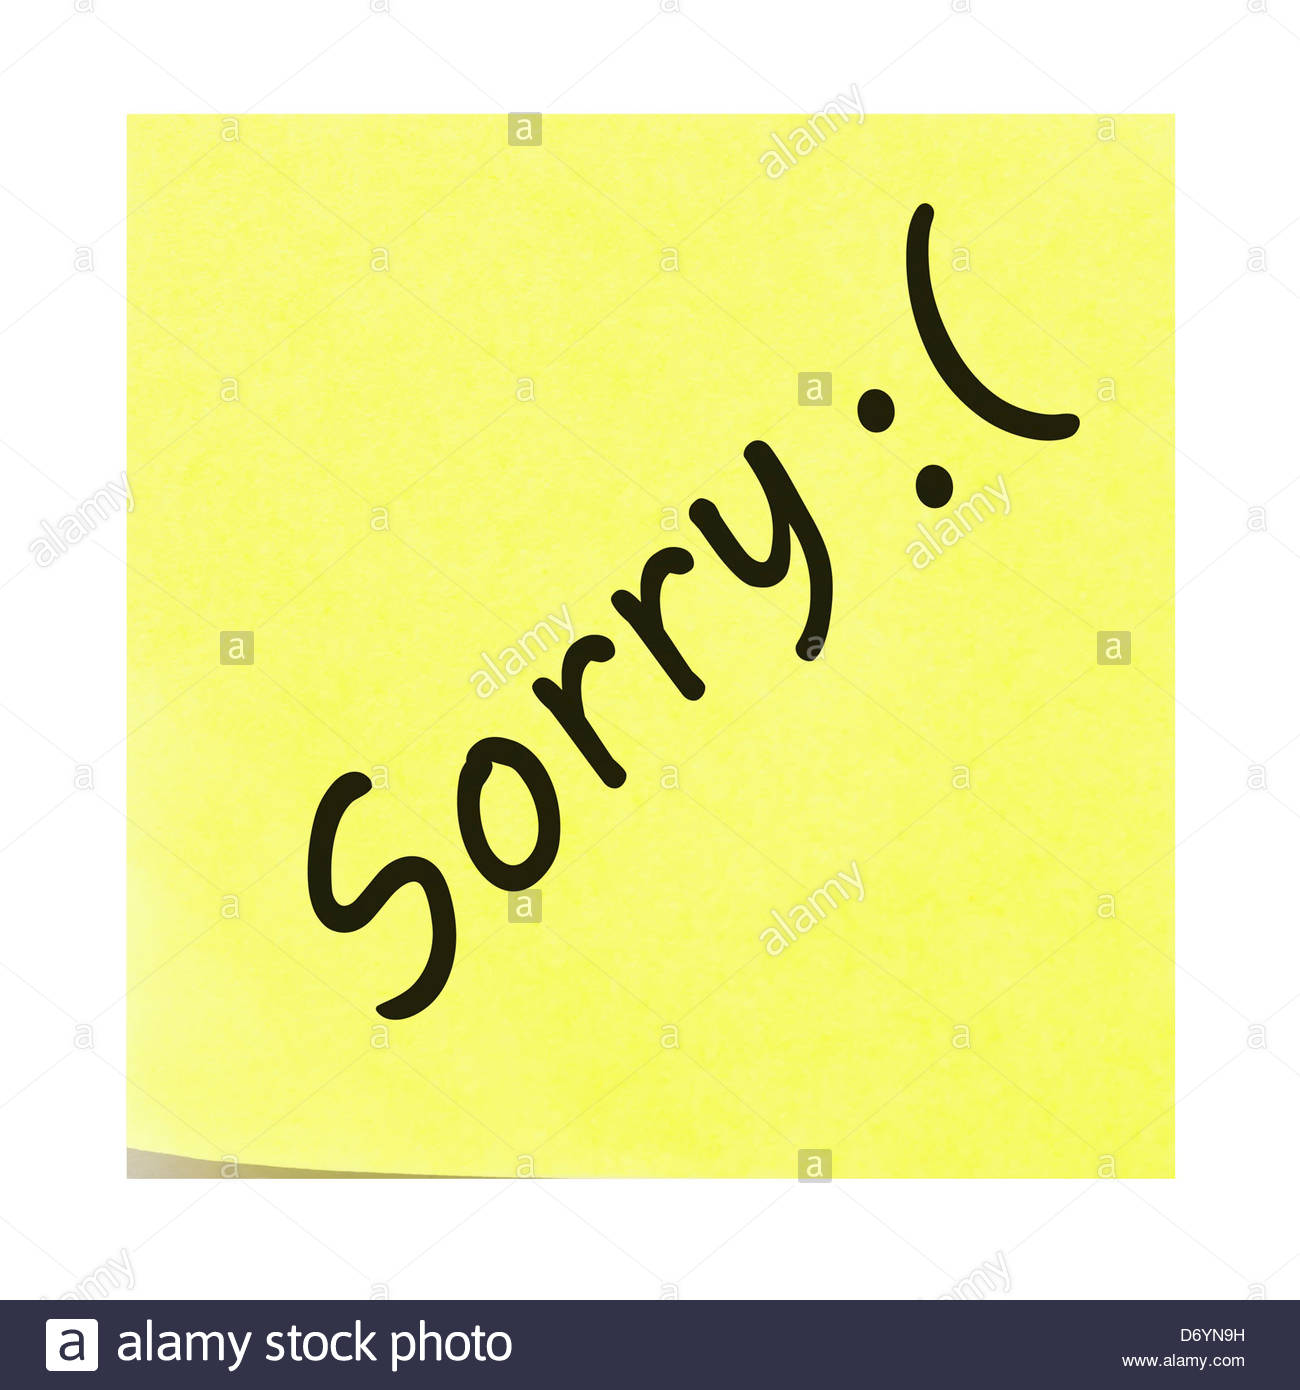 Sad Sorry Images: Sorry :( Sad Face Written On A Yellow Sticky Note. Post It